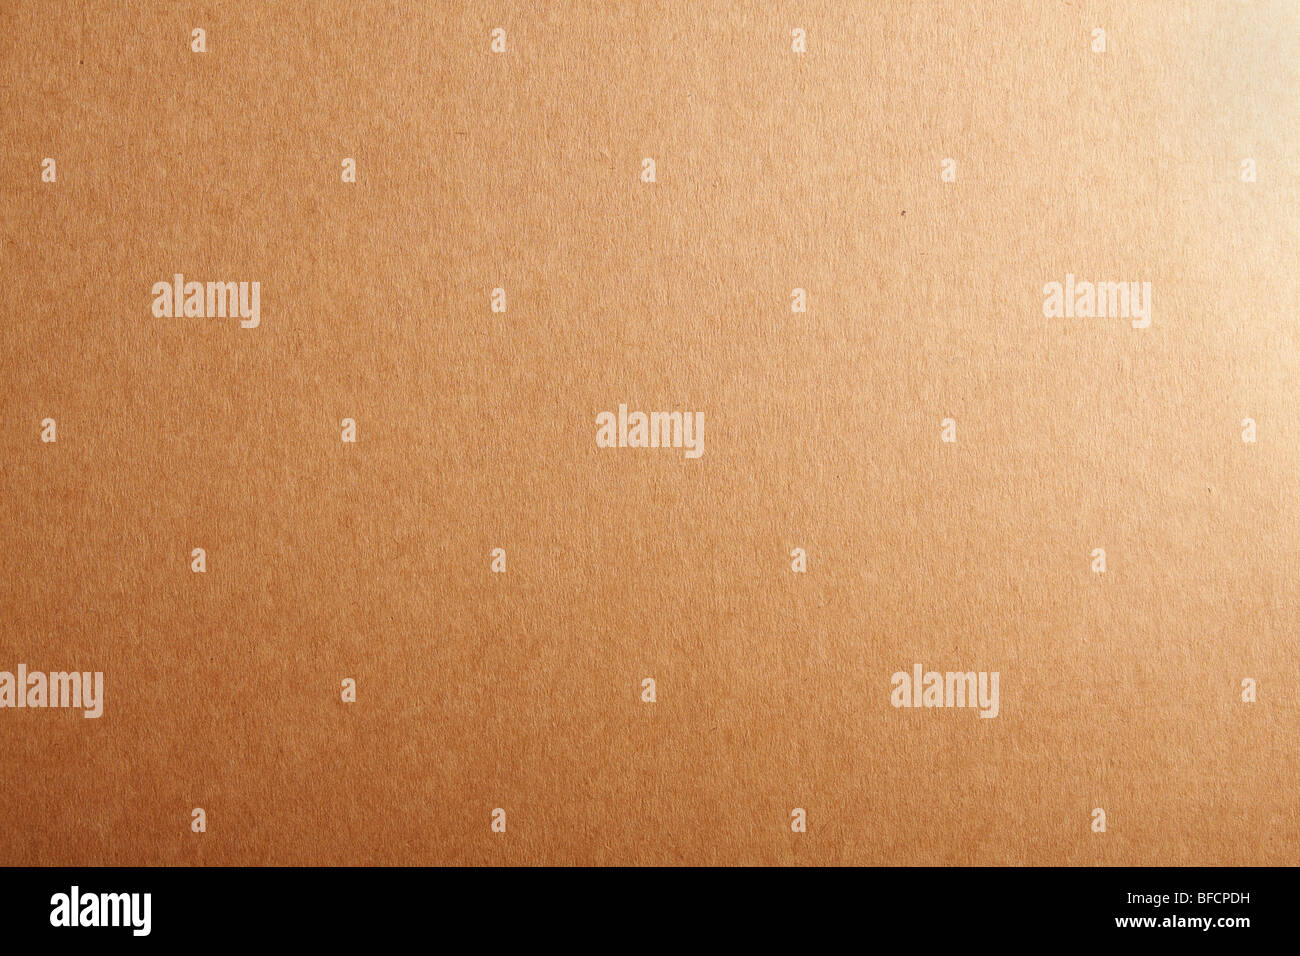 Blank beige cardboard textured background. - Stock Image